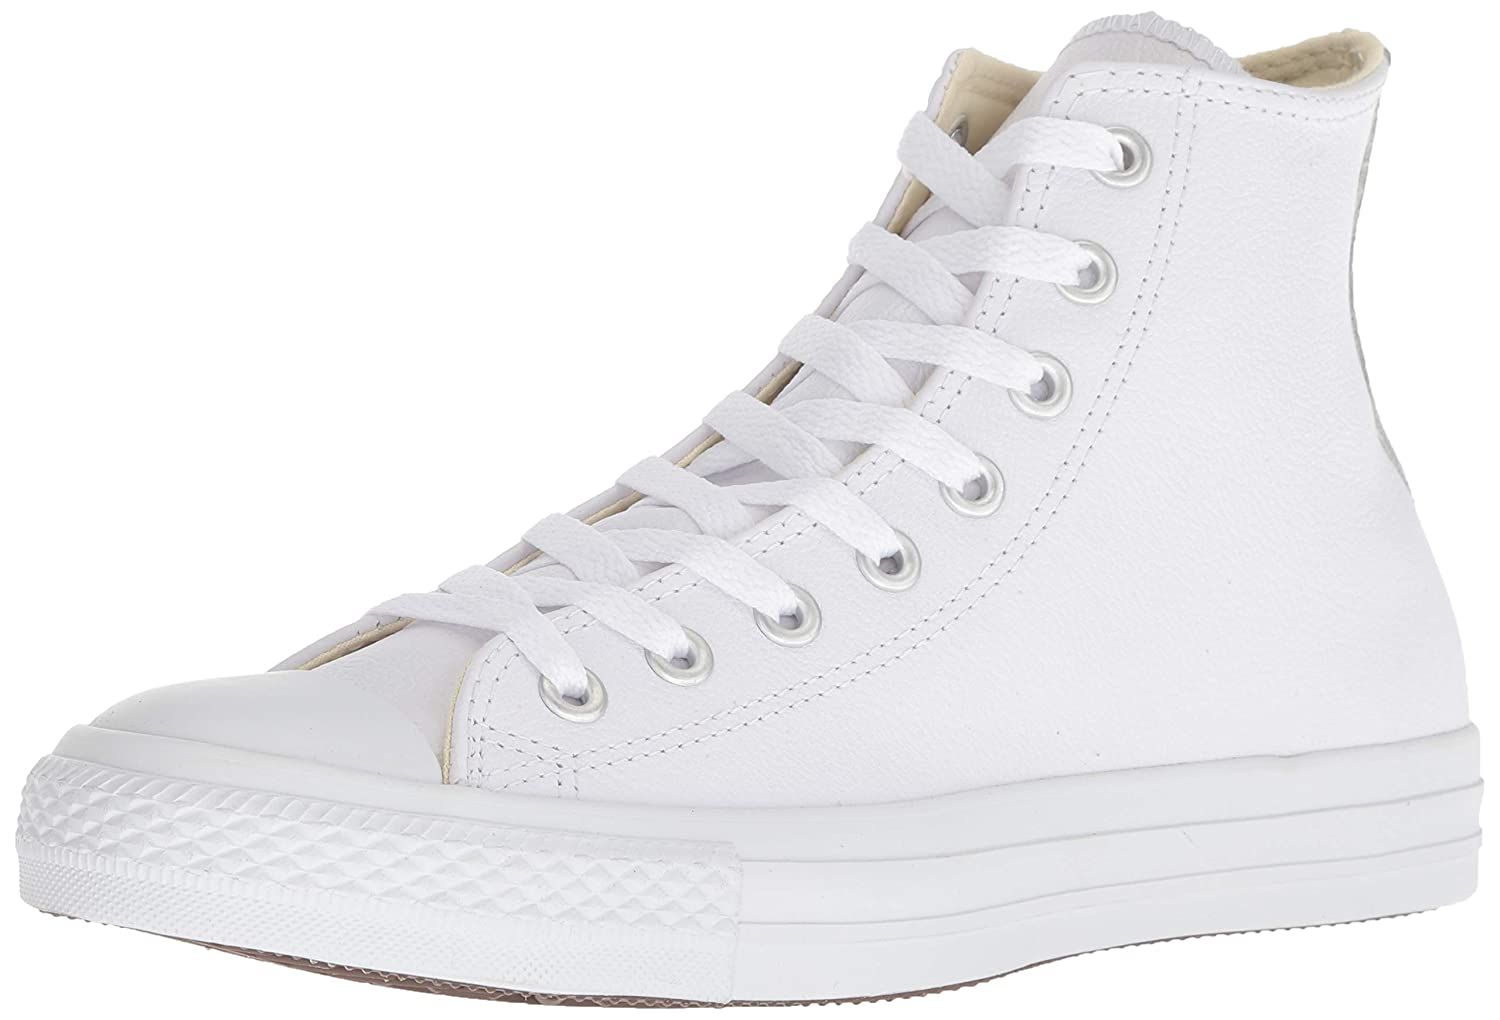 159ec8df3b47 Converse Unisex-Adult Chuck Taylor All Star Core Leather Hi-Top Trainers   Amazon.co.uk  Sports   Outdoors